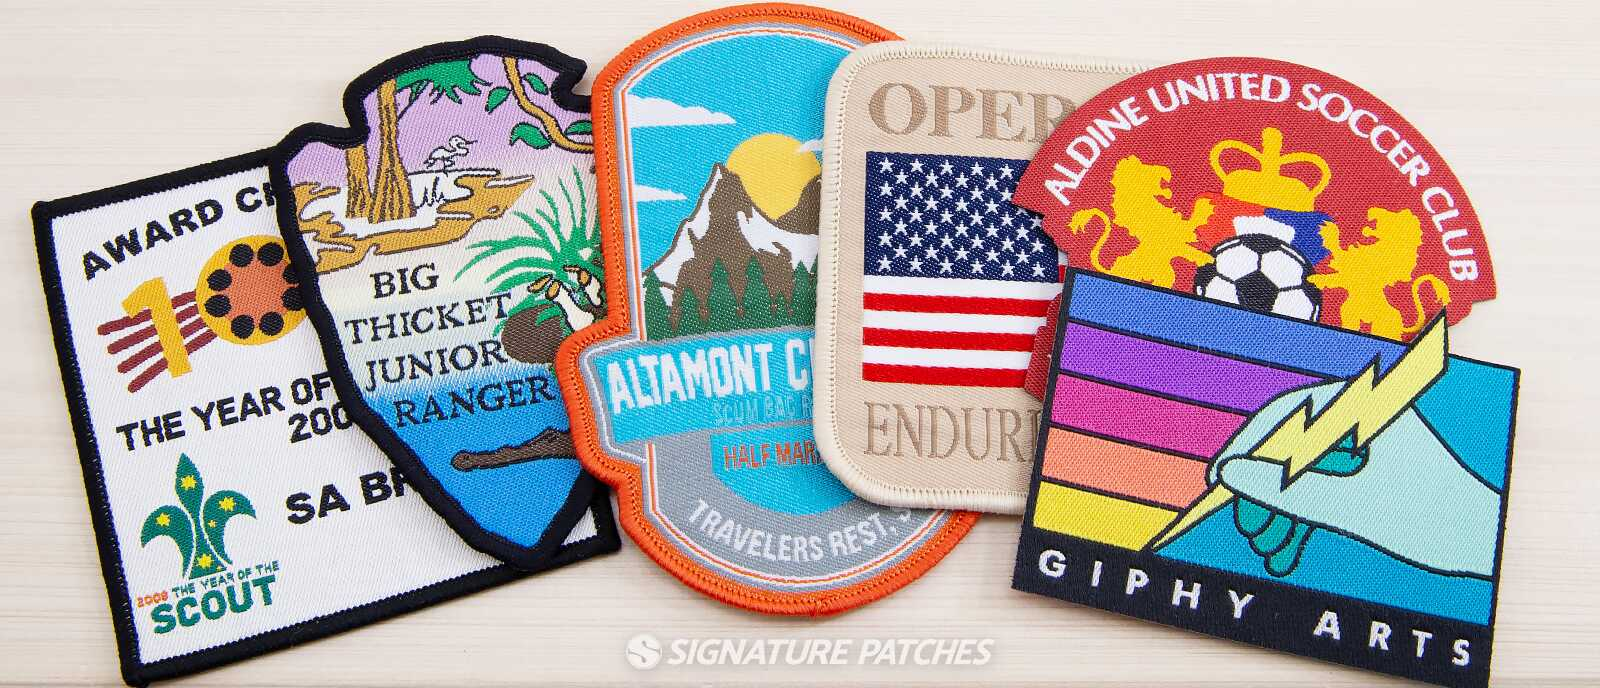 signaturepatches-woven-patch-comparison-2